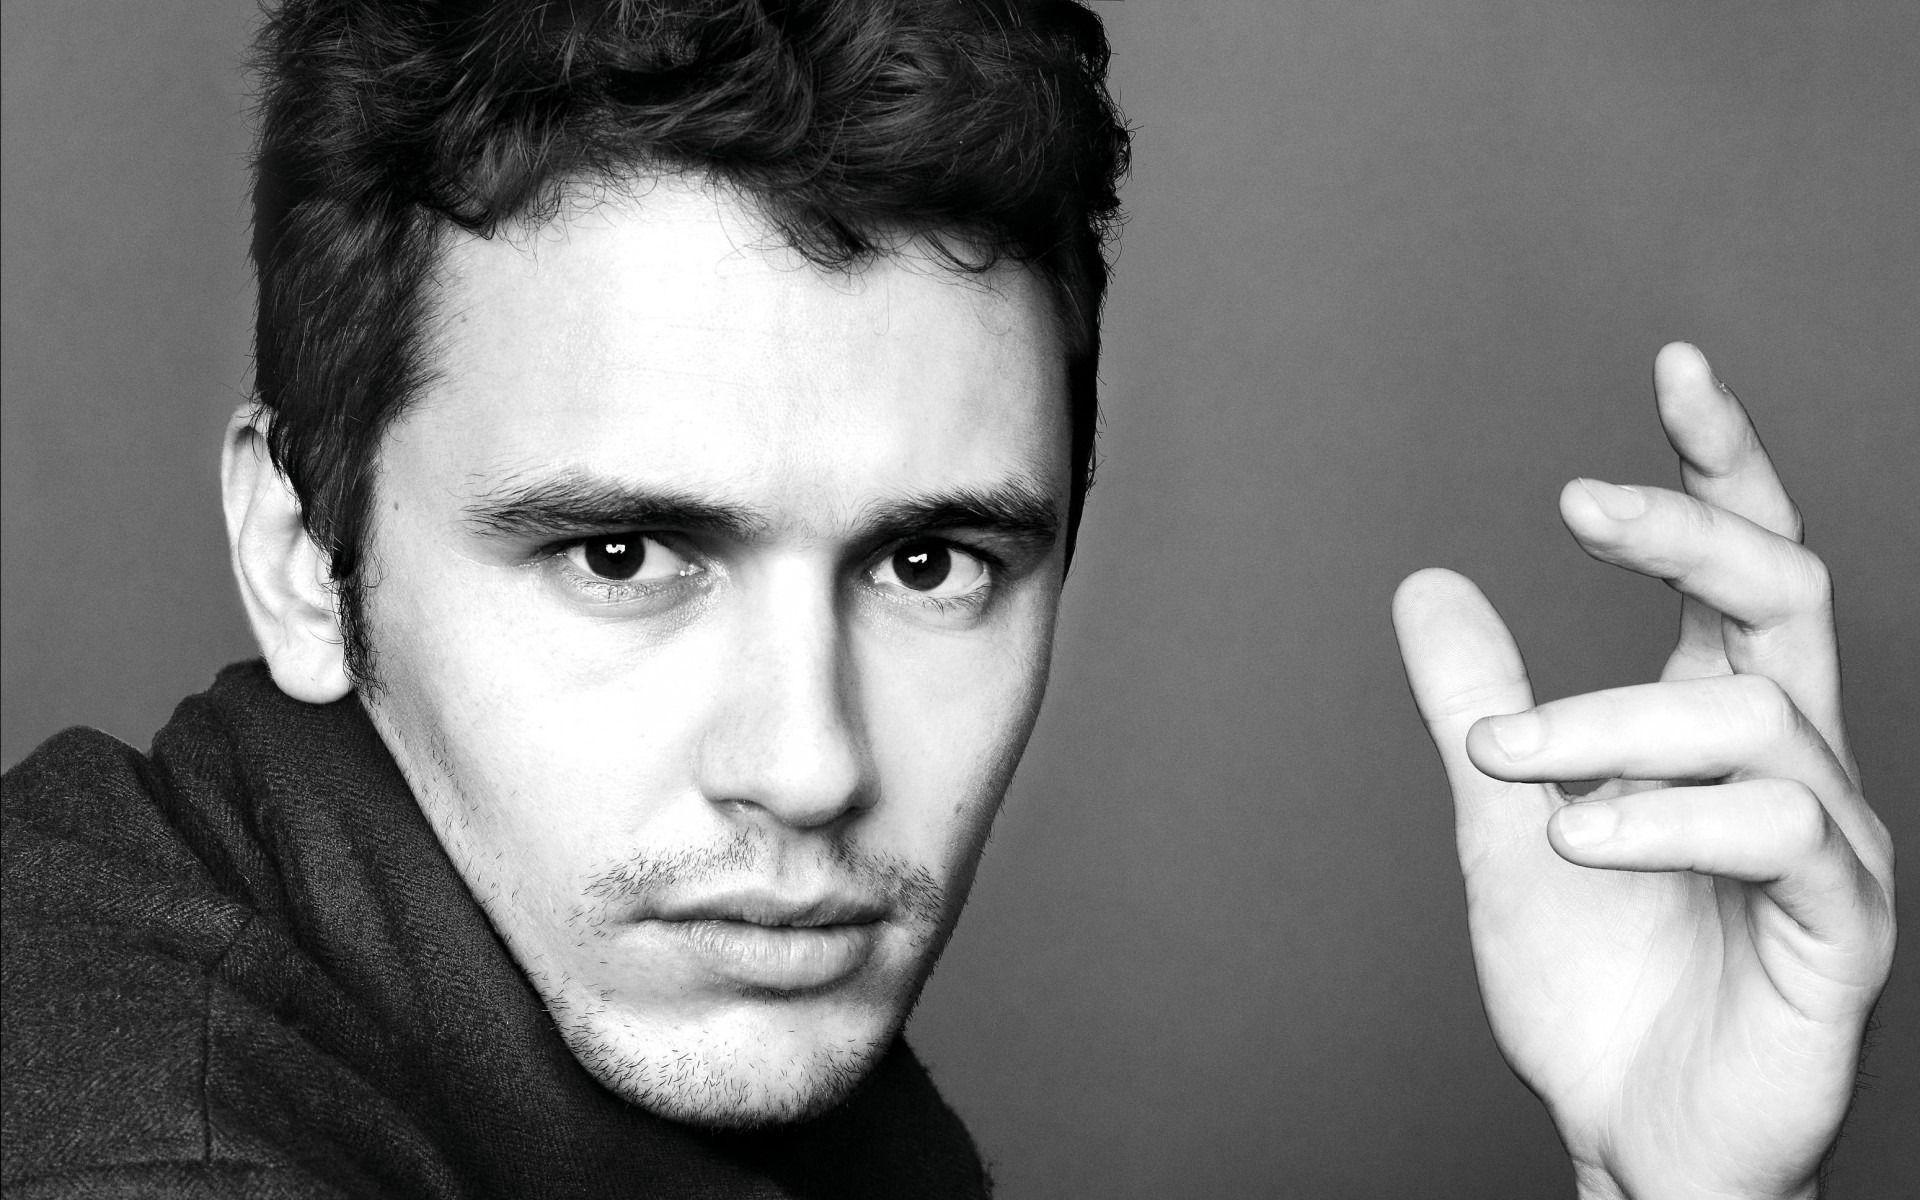 Fonds d&James Franco : tous les wallpapers James Franco